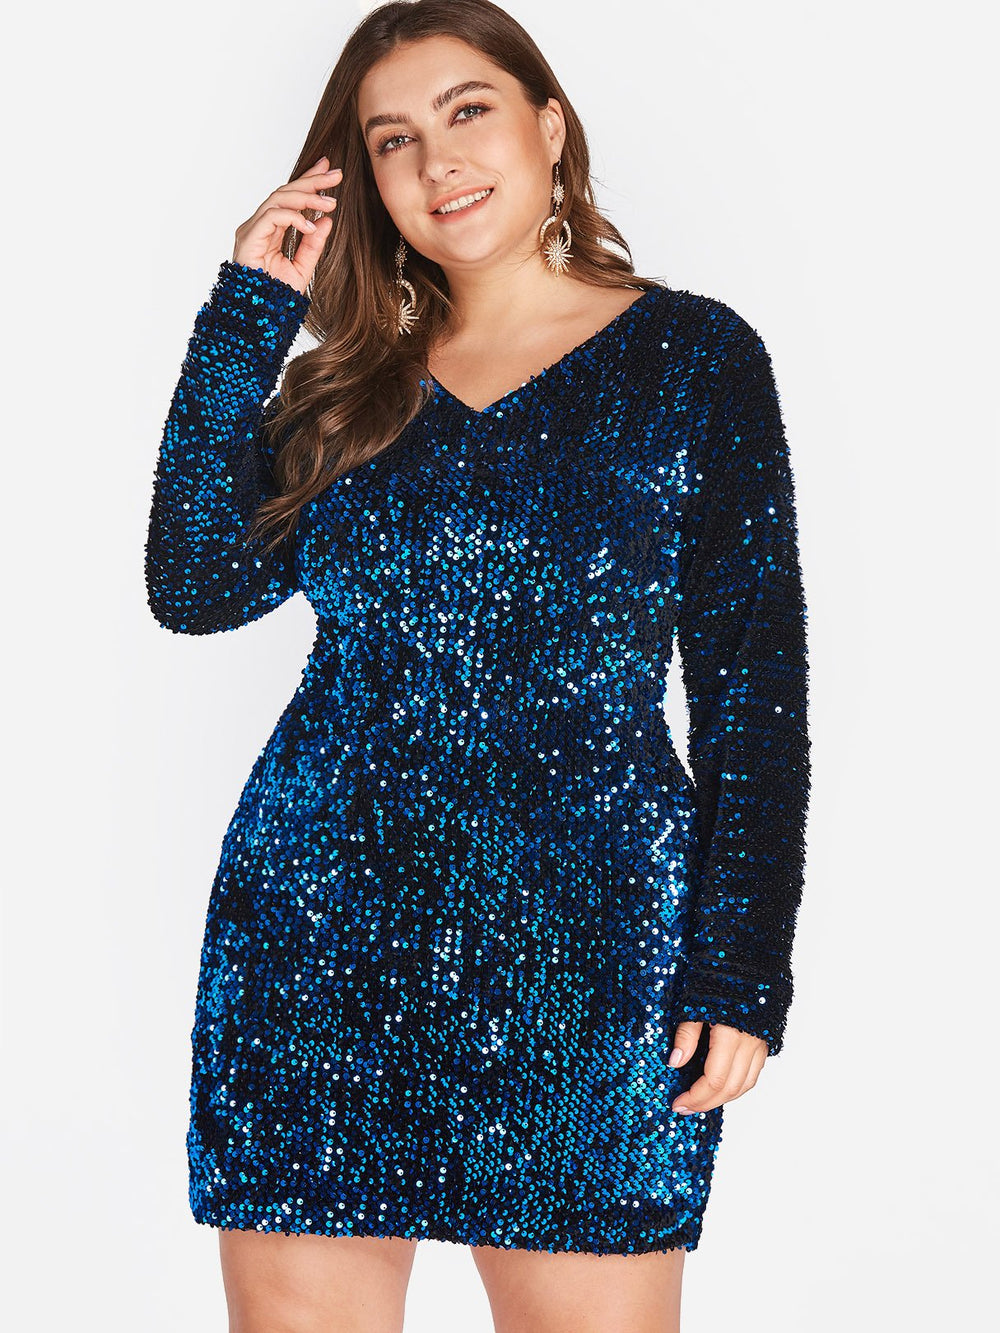 V-Neck Plain Sequins Embellished Long Sleeve Plus Size Dress